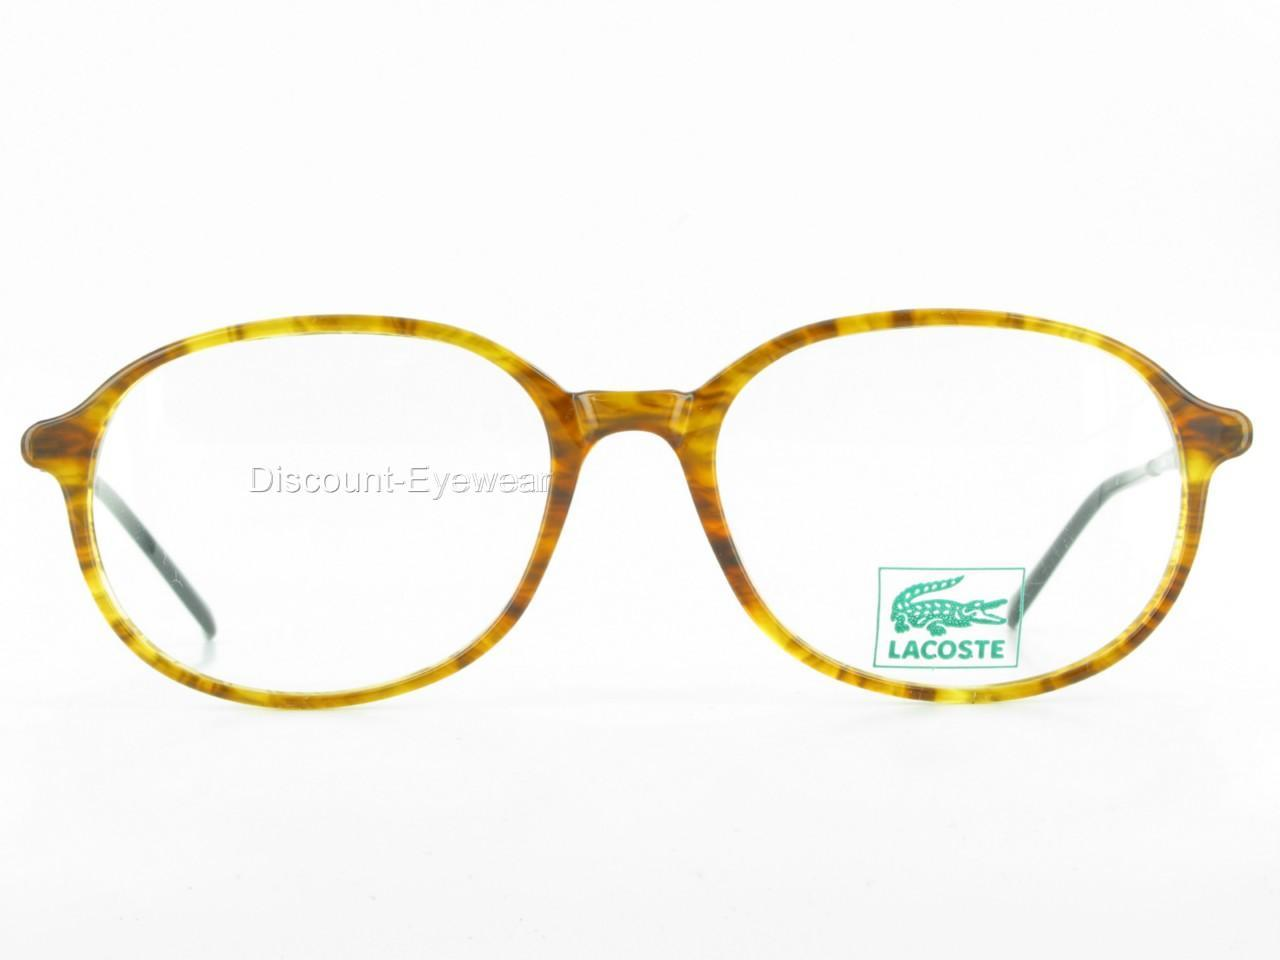 Glasses Frames For Blondes : LACOSTE 7110 Designer EYEGLASS FRAMES Blonde Tortoise eBay